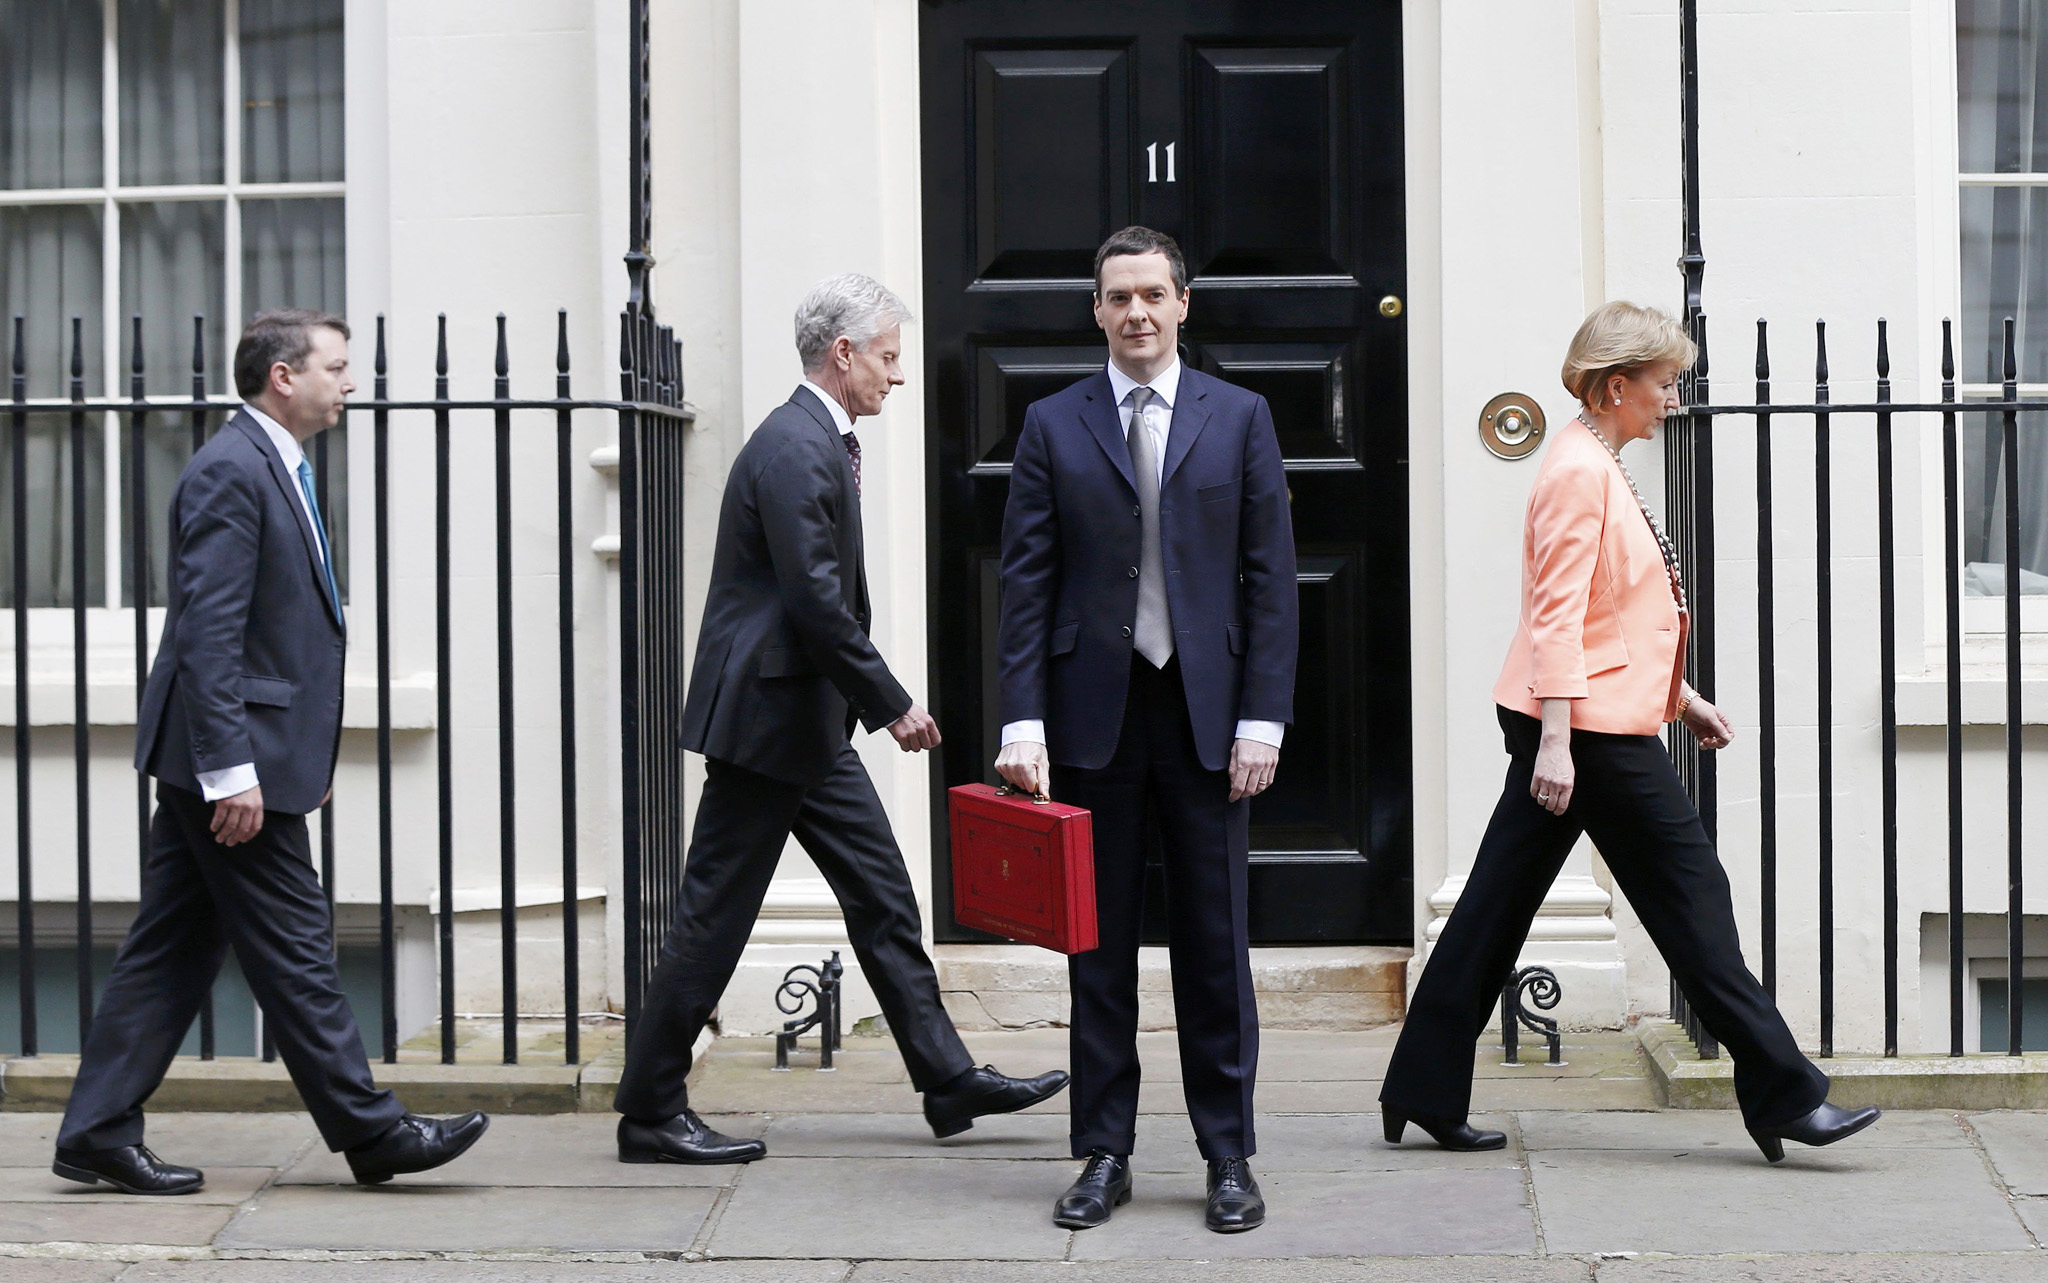 Britain's Chancellor of the Exchequer, George Osborne, holds up his budget case for the cameras as he stands outside number 11 Downing Street in central London...Britain's Chancellor of the Exchequer, George Osborne, holds up his budget case for the cameras as he stands with his Treasury team outside number 11 Downing Street, before delivering his budget to the House of Commons, in central London March 18, 2015.   REUTERS/Suzanne Plunkett (BRITAIN  - Tags: BUSINESS POLITICS TPX IMAGES OF THE DAY)